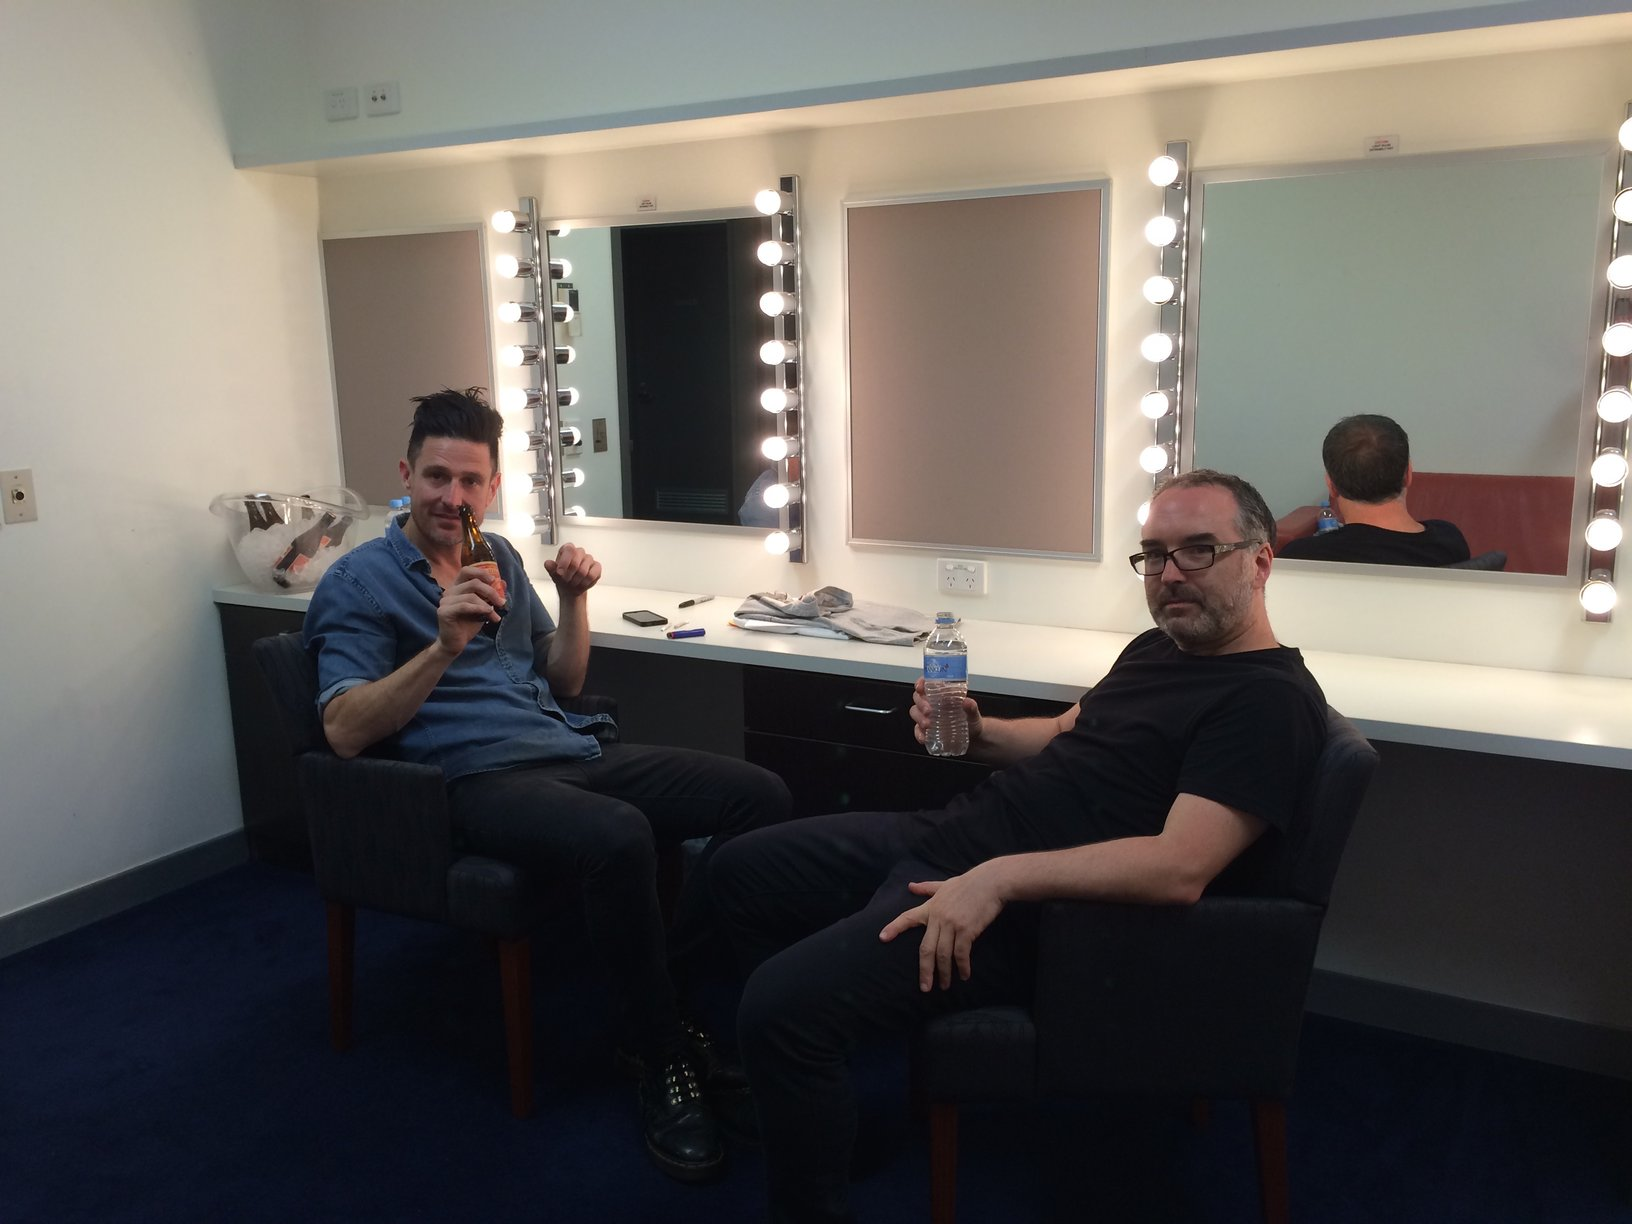 Between shows hoping I don't have a bald patch showing up in any mirrors.